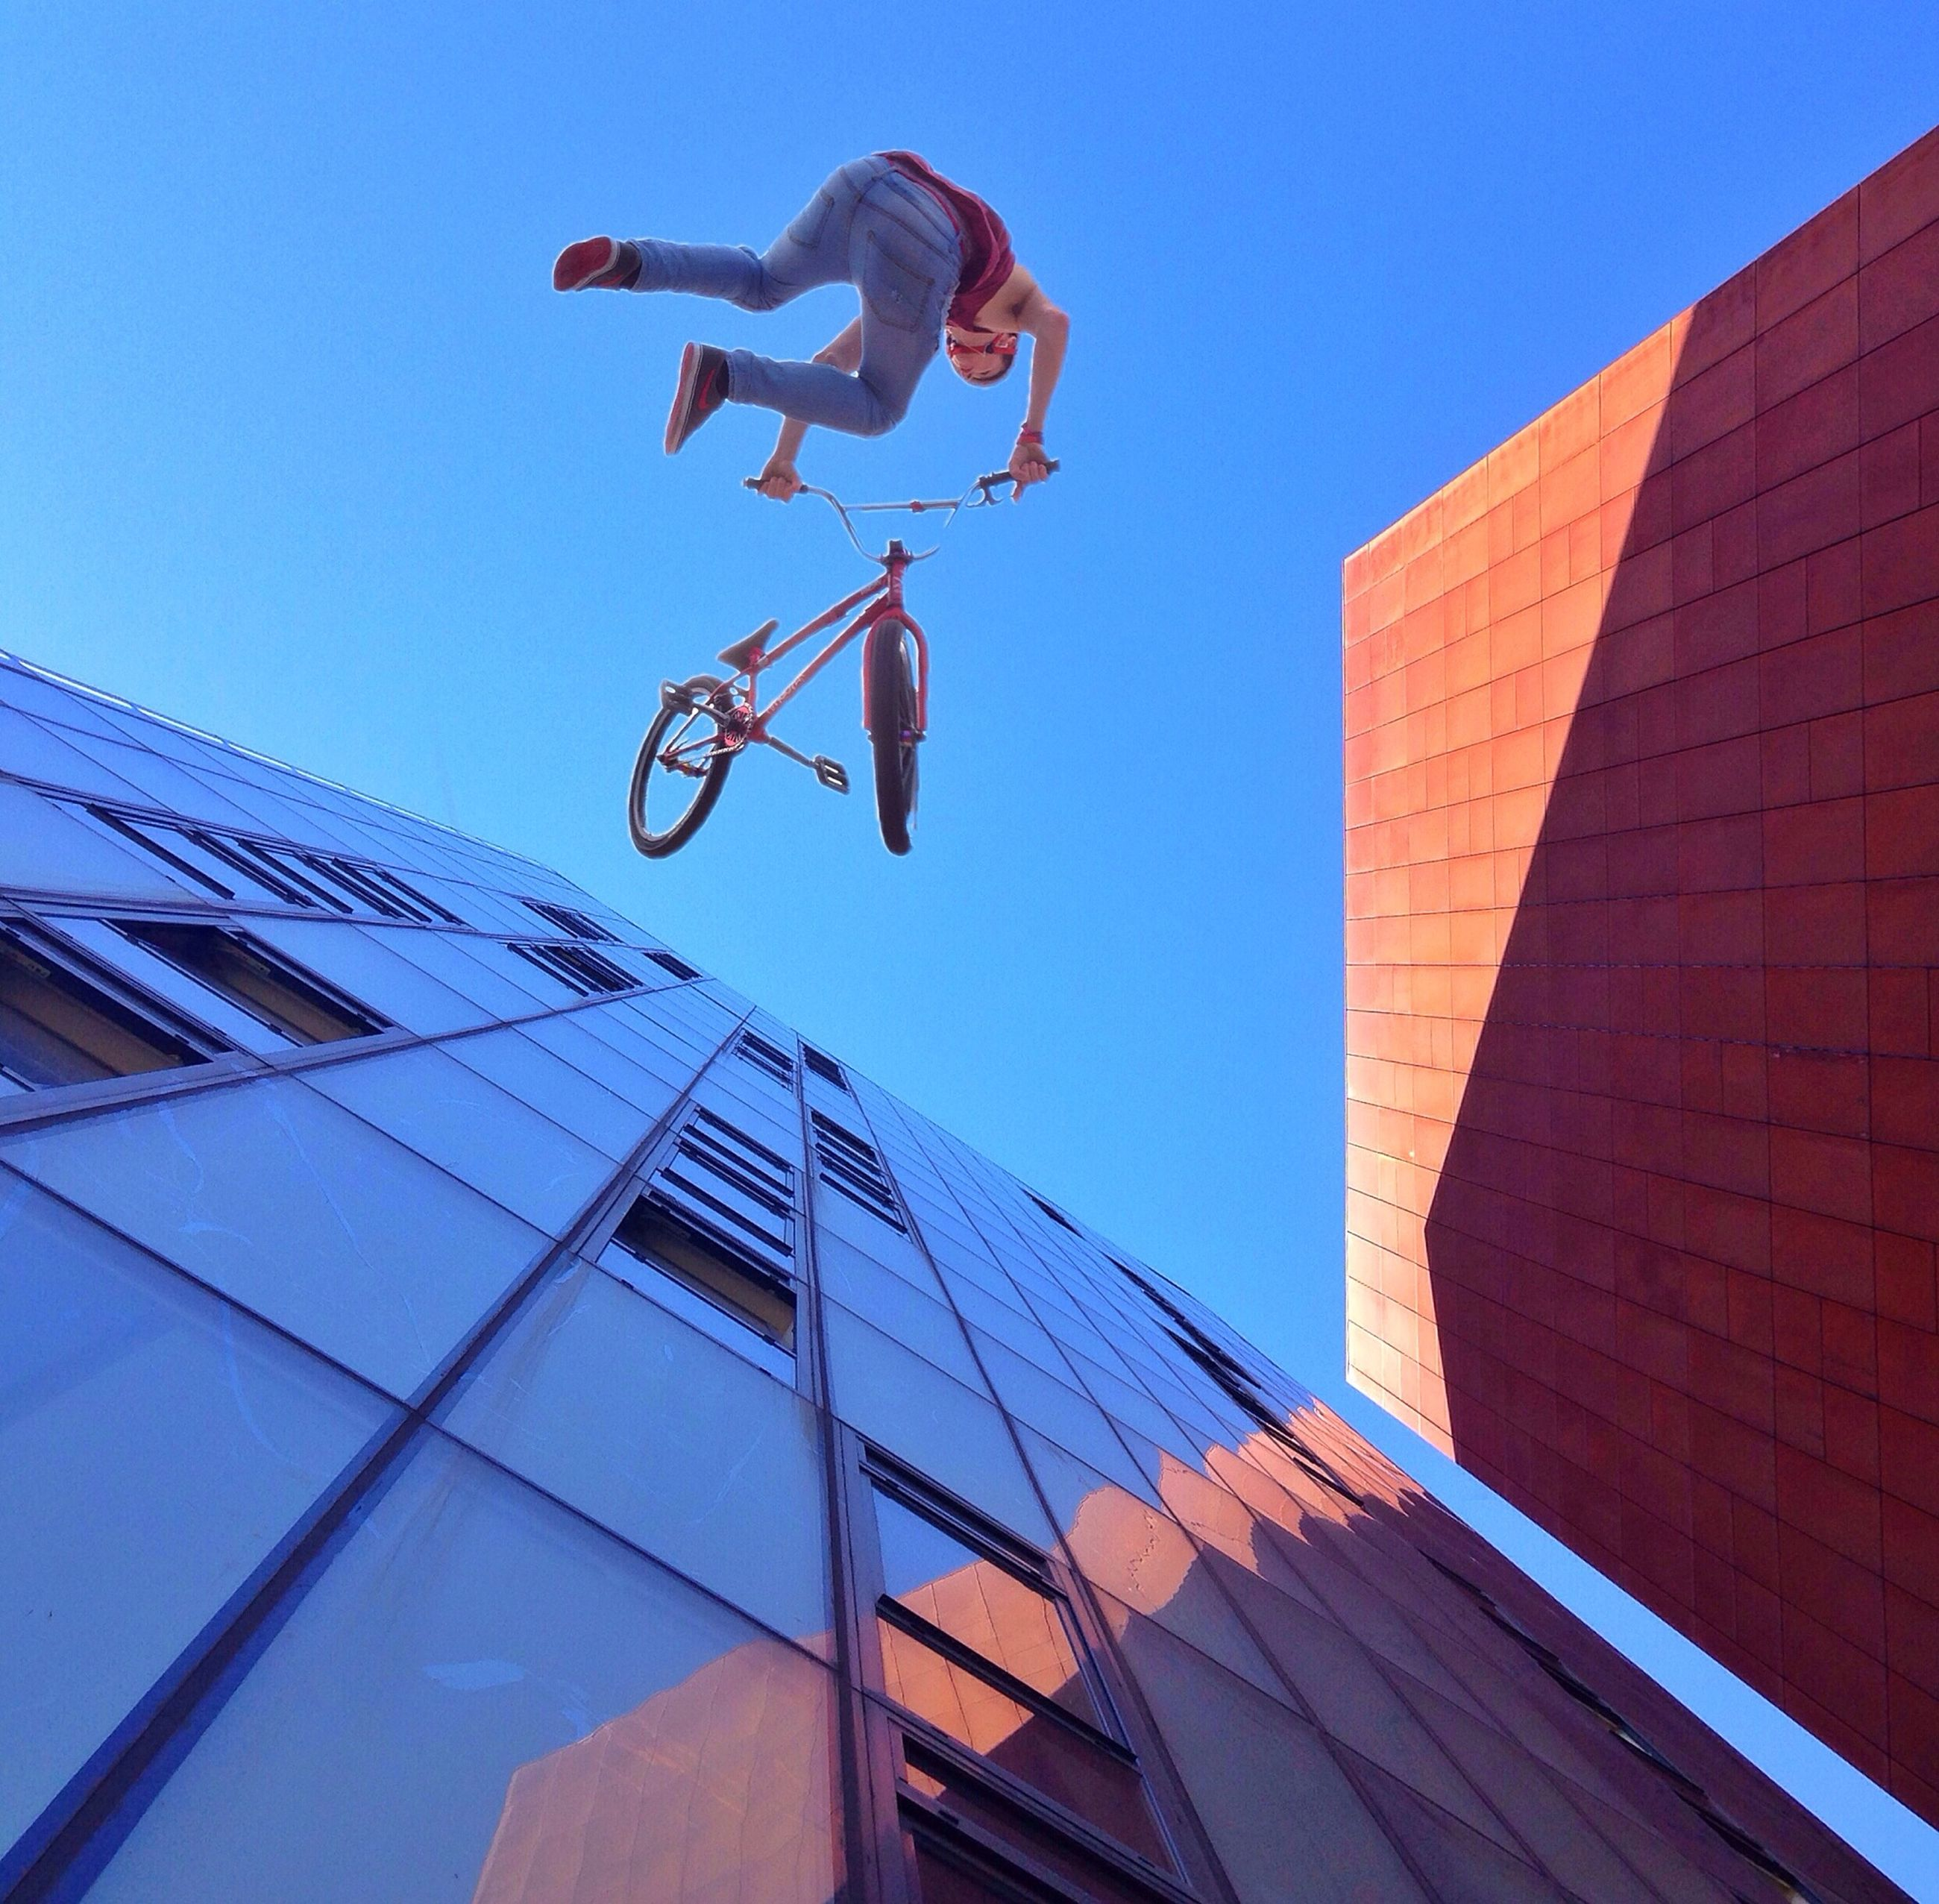 low angle view, architecture, built structure, building exterior, clear sky, blue, city, day, mid-air, outdoors, building, sunlight, modern, leisure activity, sky, men, flying, lifestyles